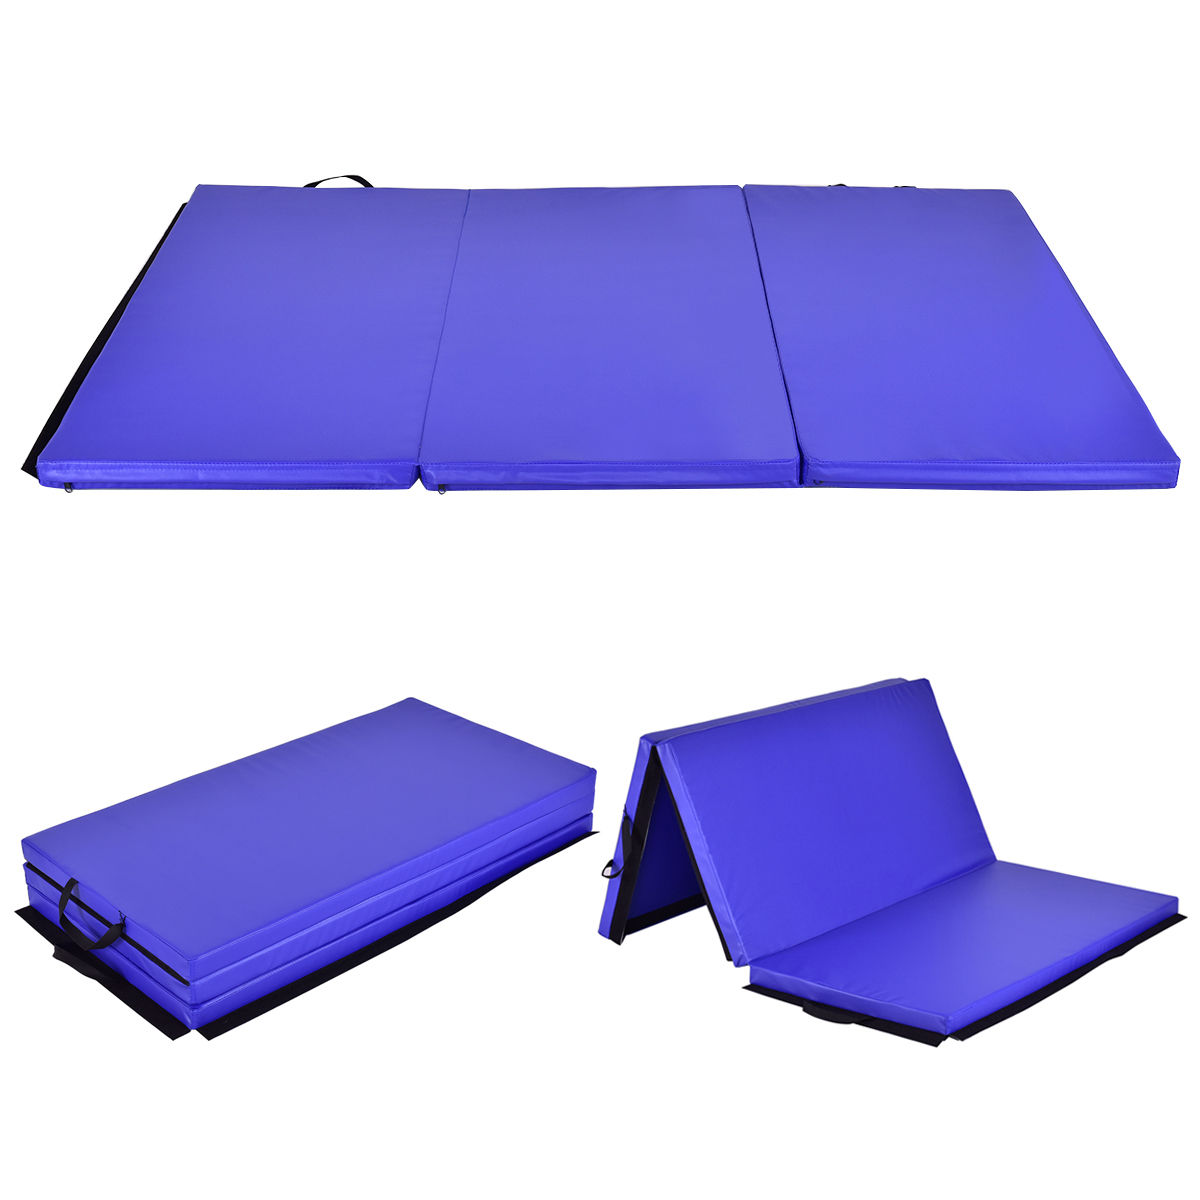 costway 6u0027x 4u0027 trifold gymnastics mat thick folding panel gym fitness